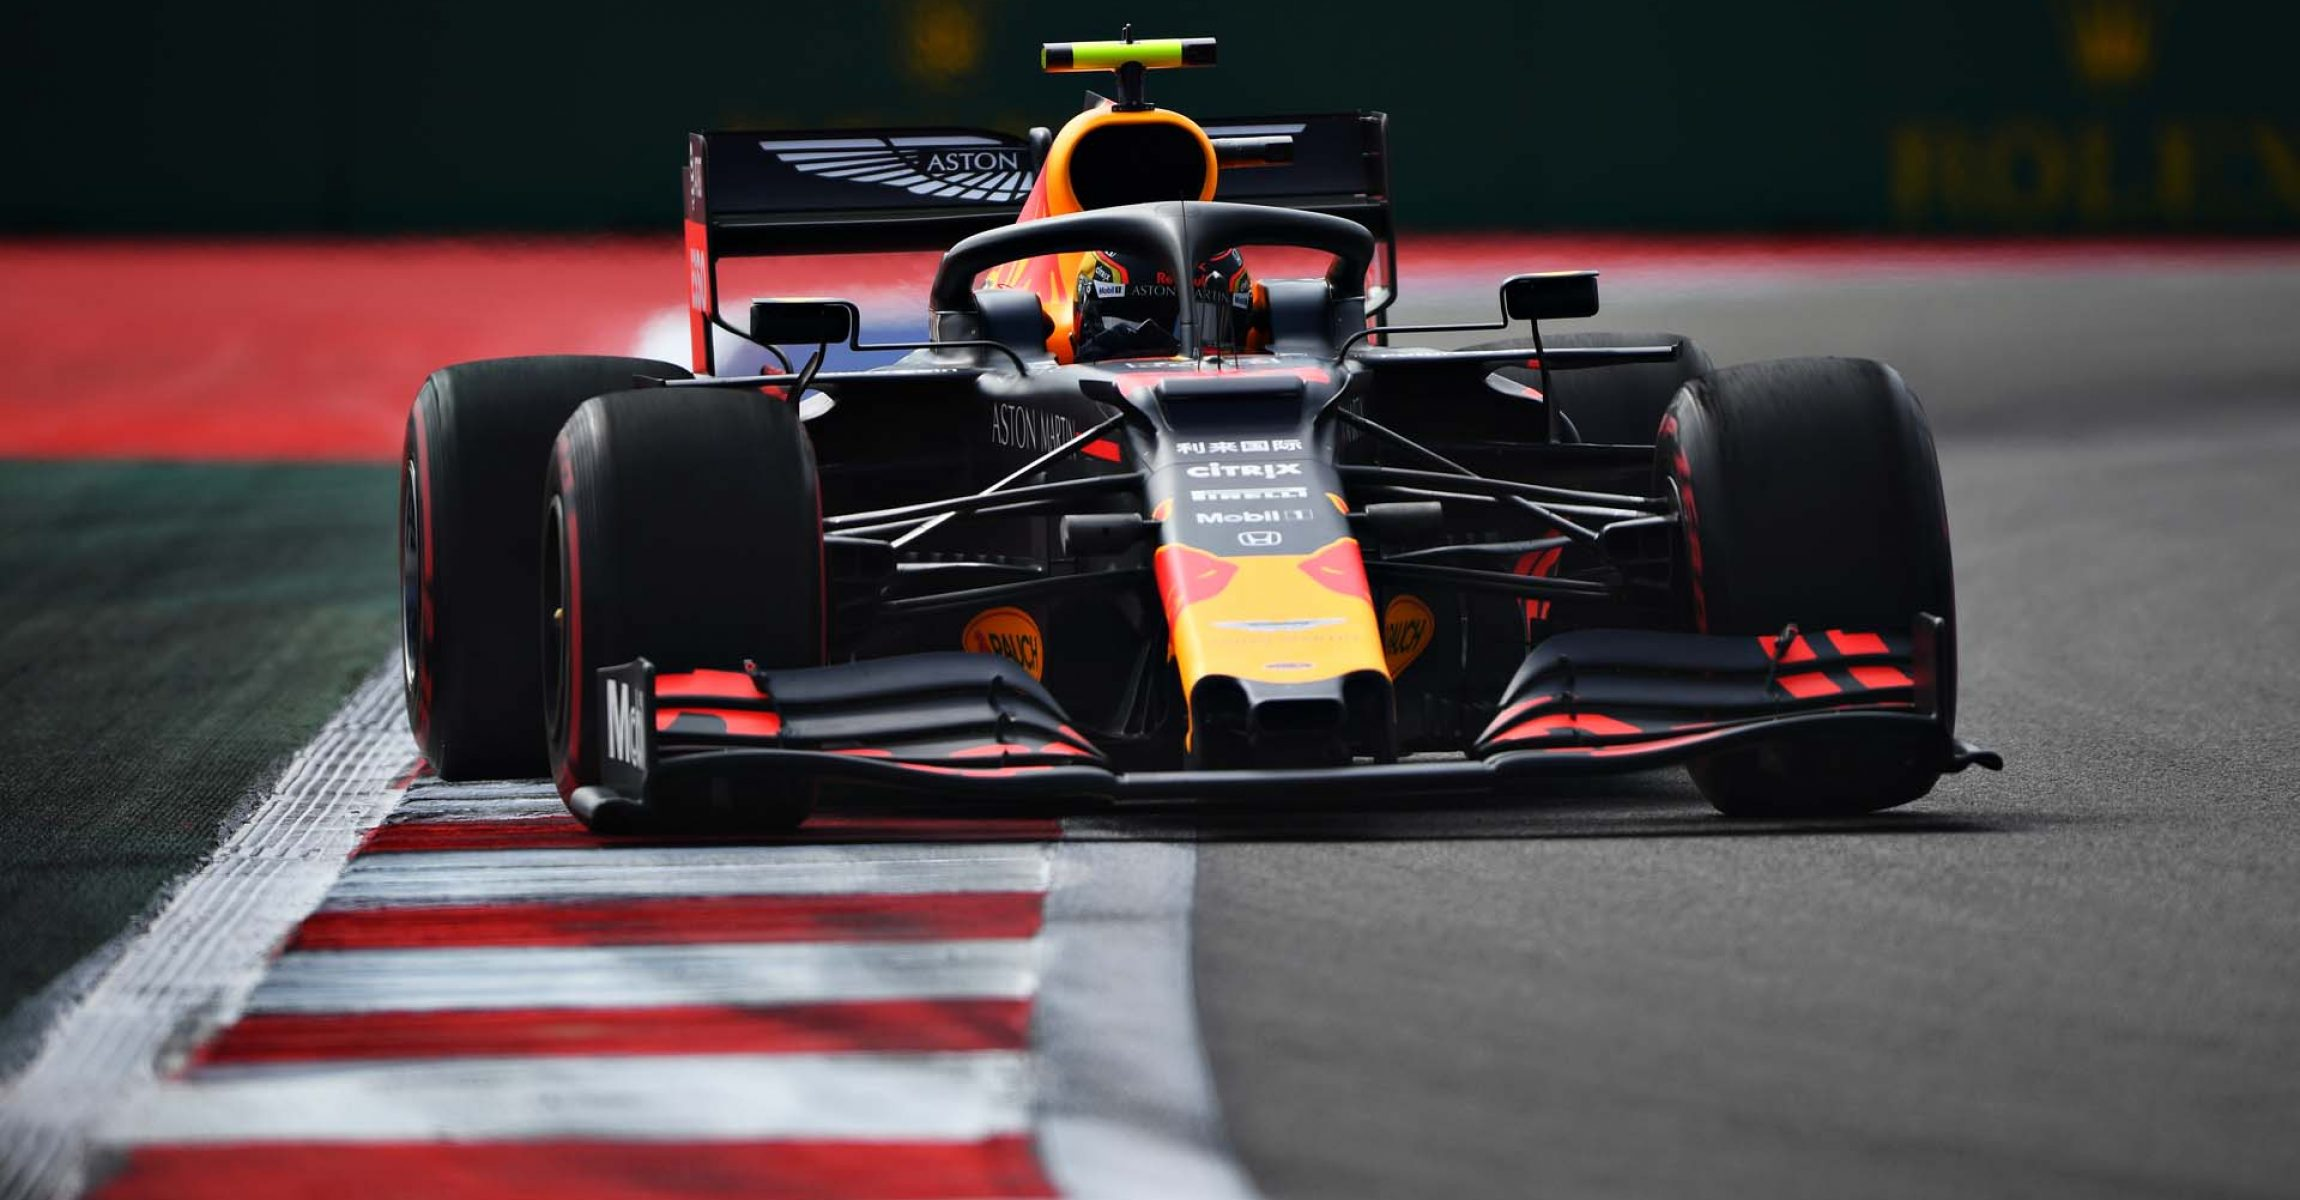 SOCHI, RUSSIA - SEPTEMBER 27: Alexander Albon of Thailand driving the (23) Aston Martin Red Bull Racing RB15 on track during practice for the F1 Grand Prix of Russia at Sochi Autodrom on September 27, 2019 in Sochi, Russia. (Photo by Clive Mason/Getty Images) // Getty Images / Red Bull Content Pool  // AP-21PUQQT6W2111 // Usage for editorial use only //